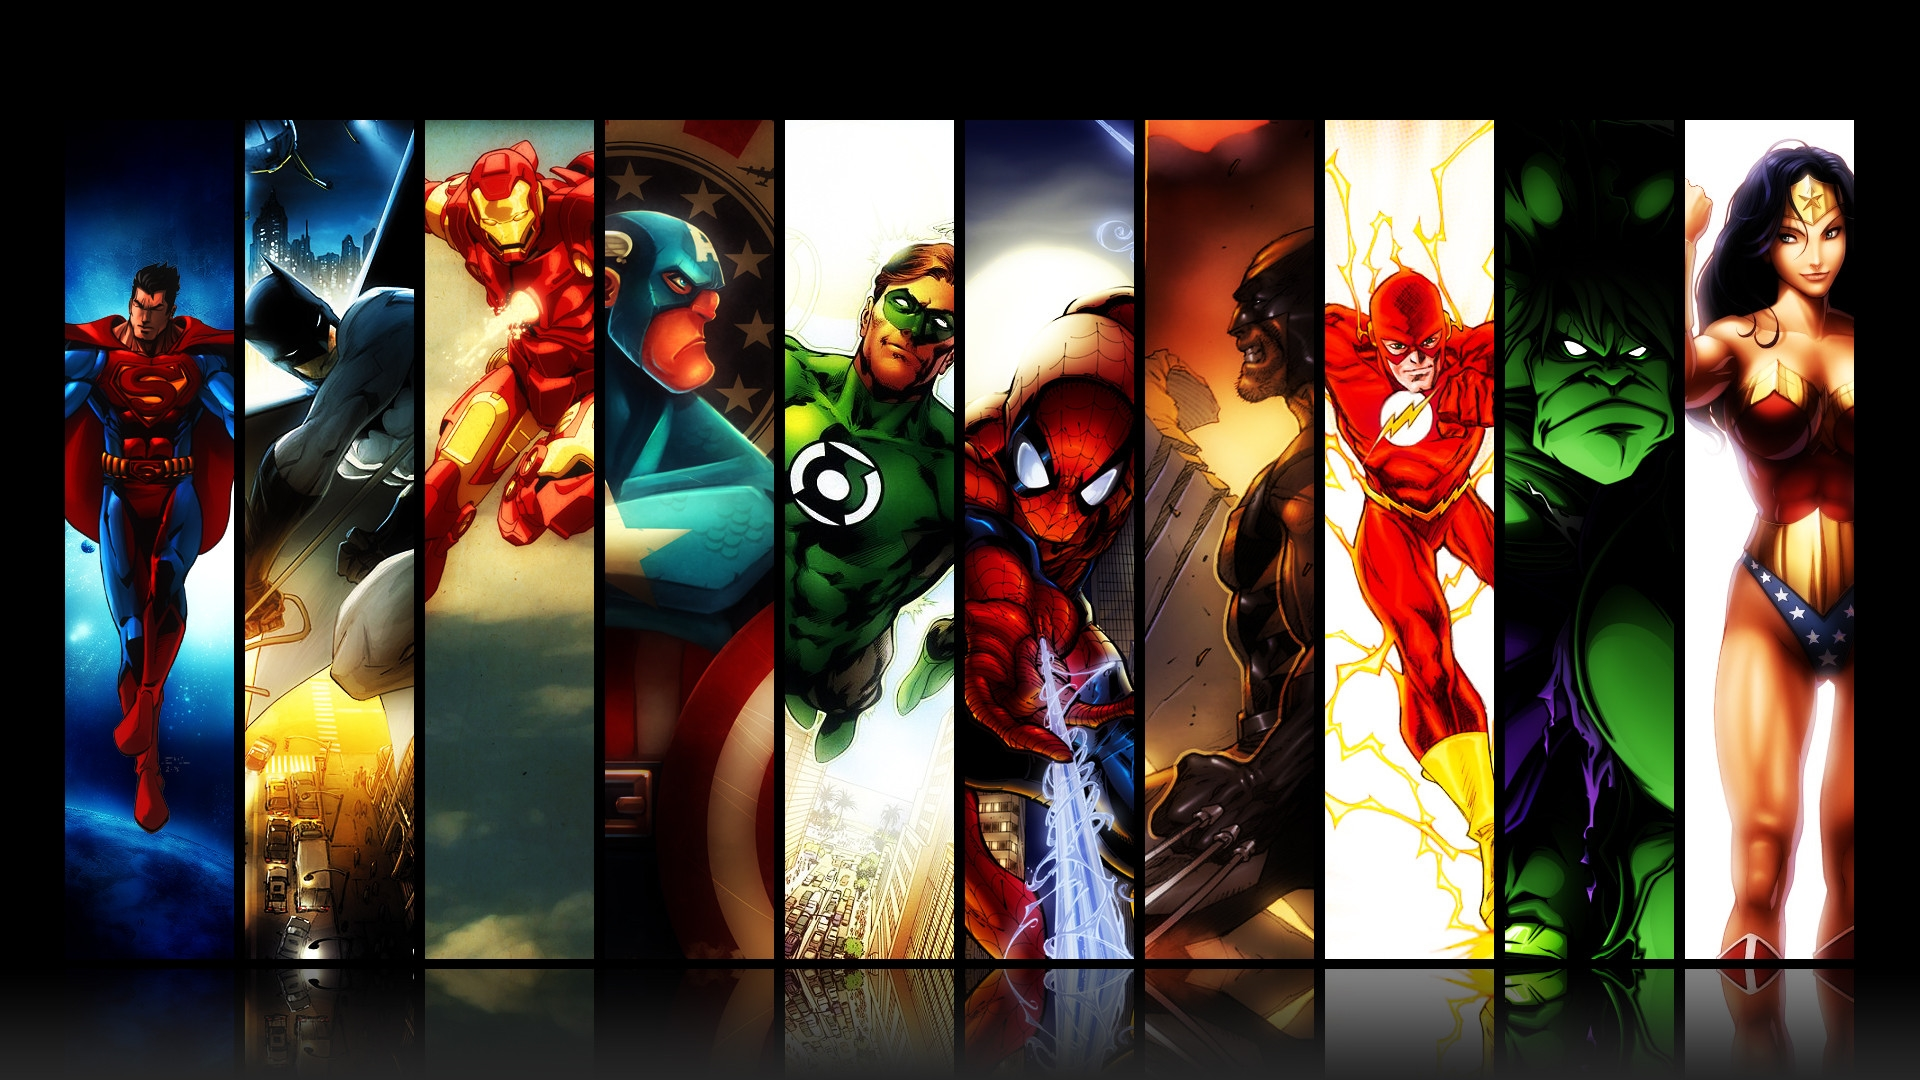 marvel dc comic images siper heroes